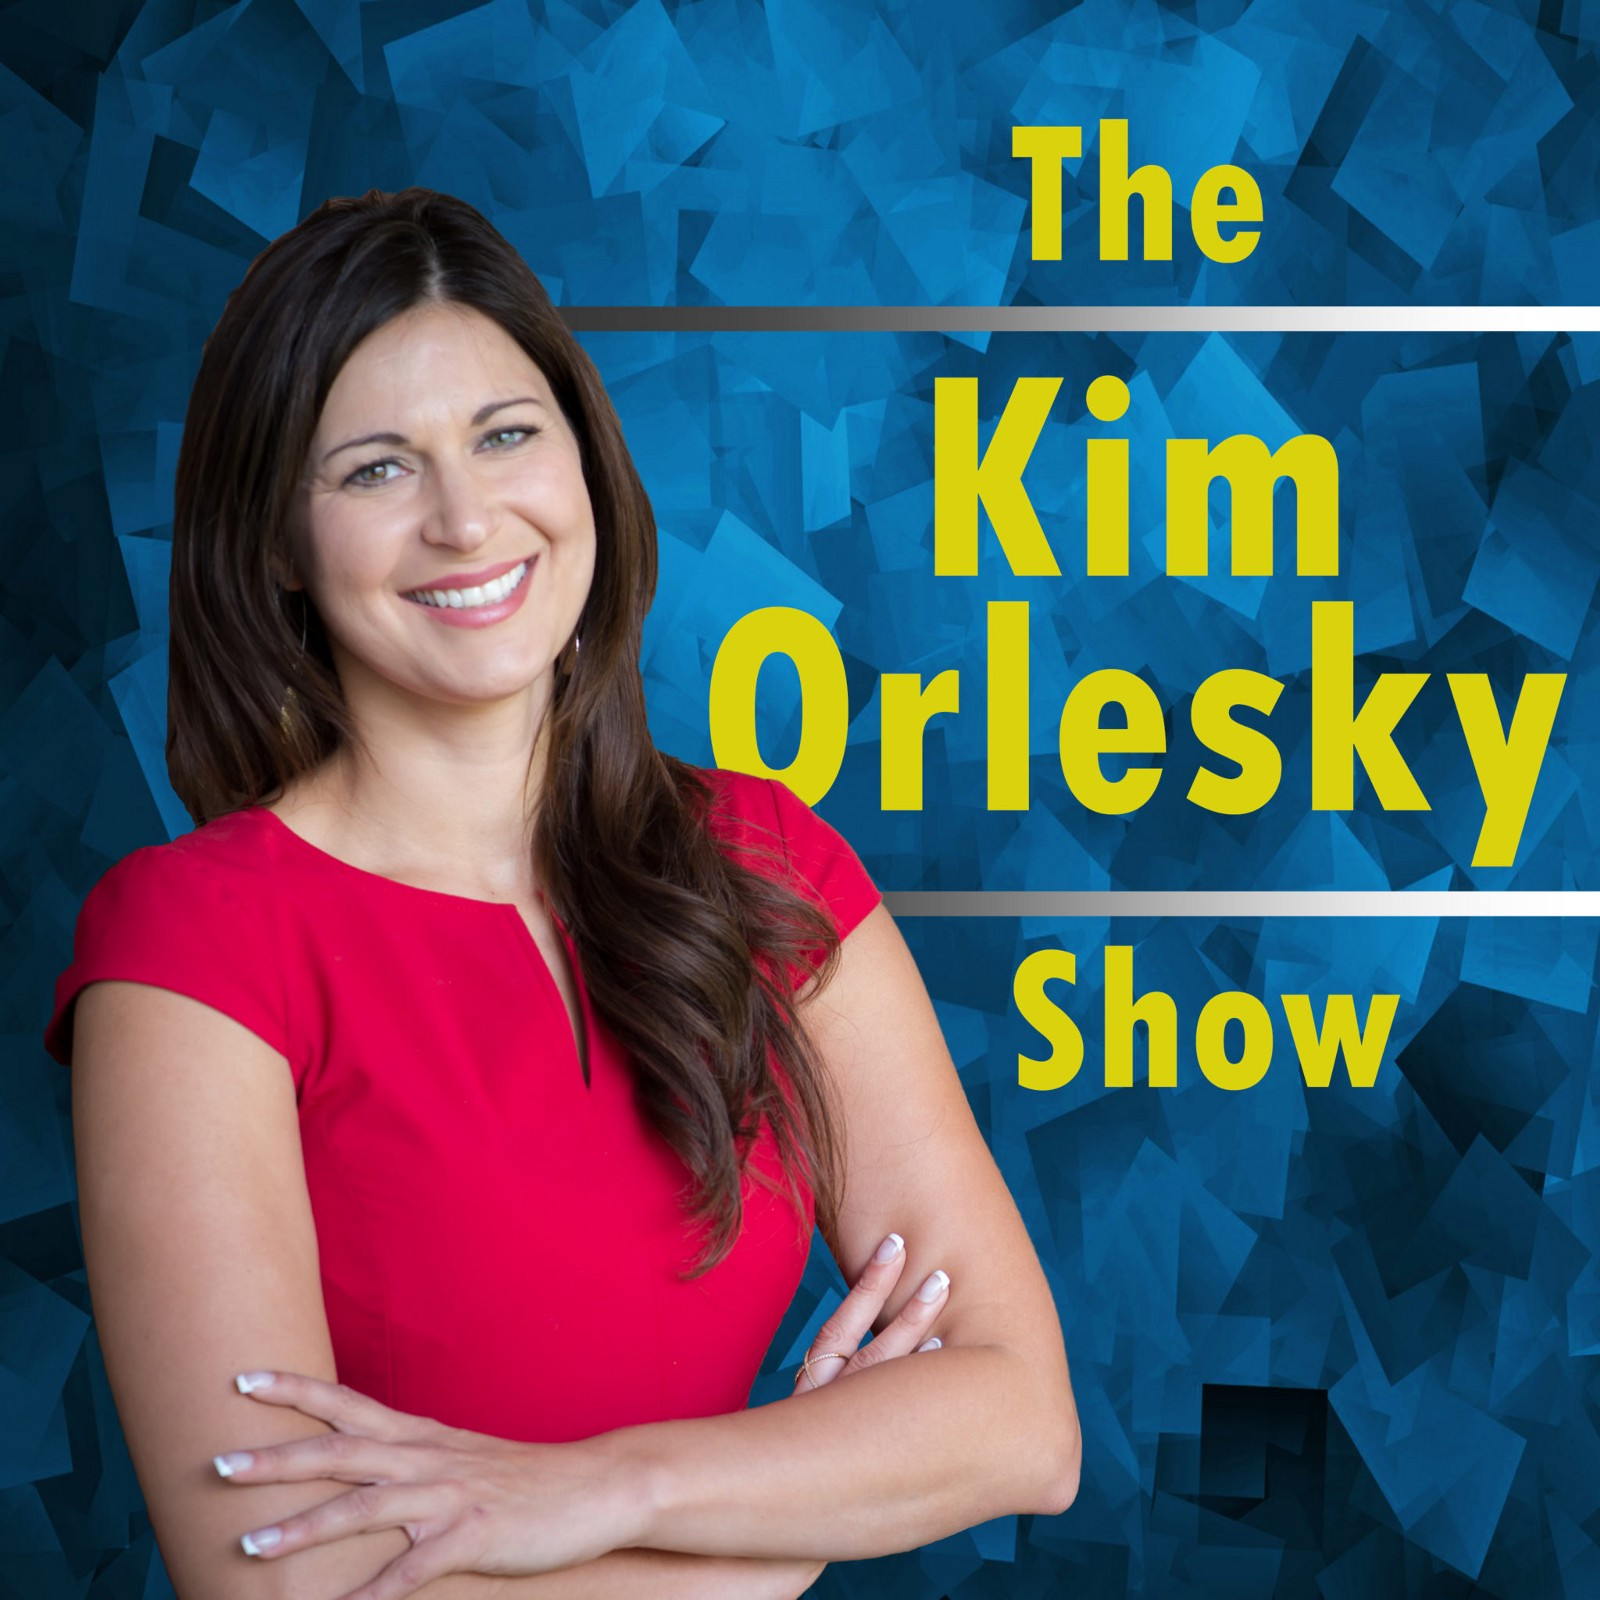 The Kim Orlesky Show Podcast